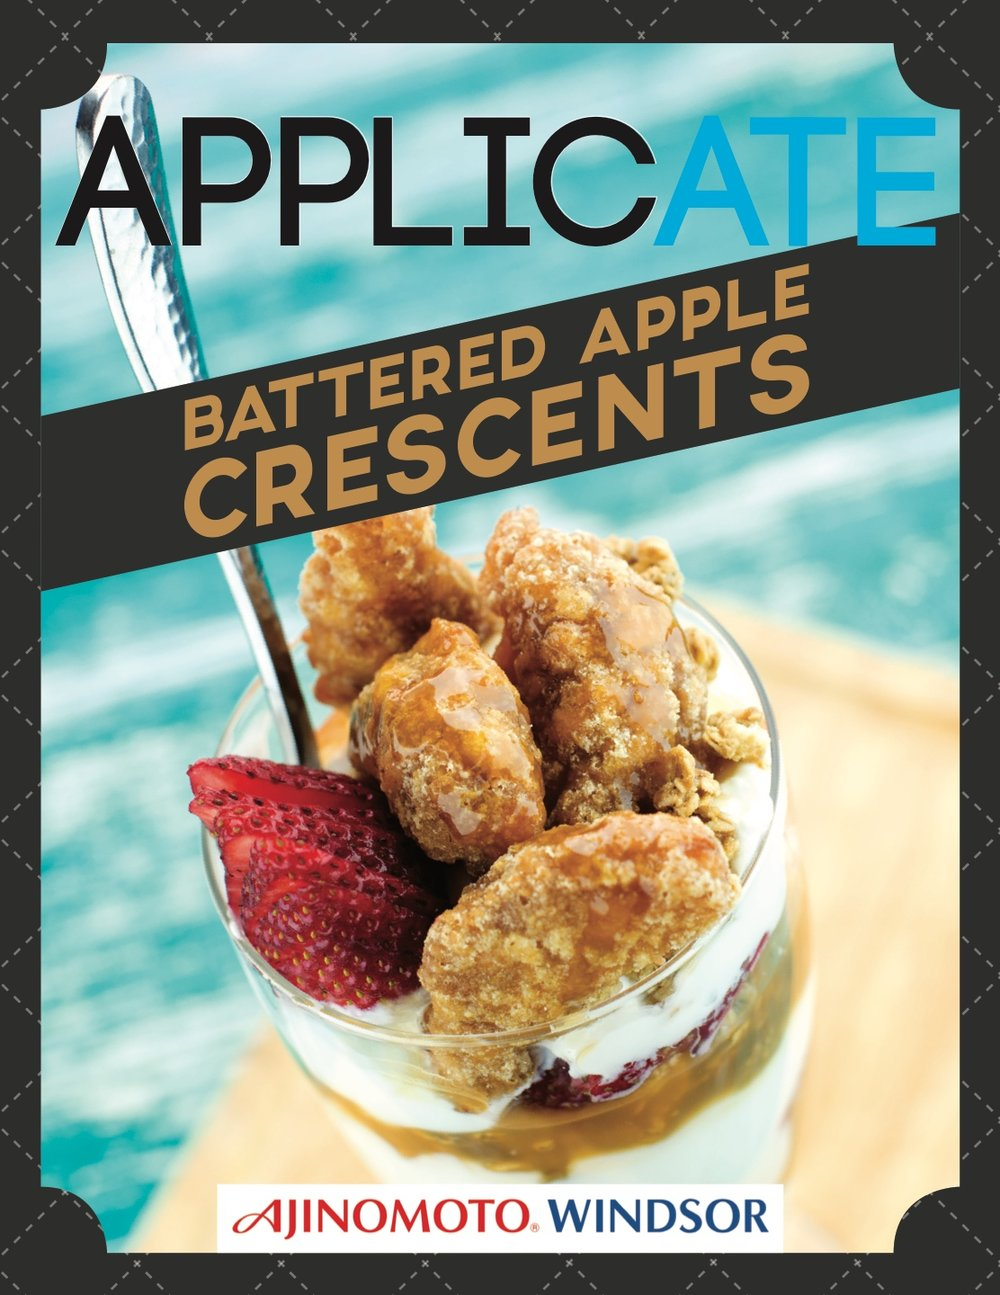 APPLICATE APPLE CRESCENTS